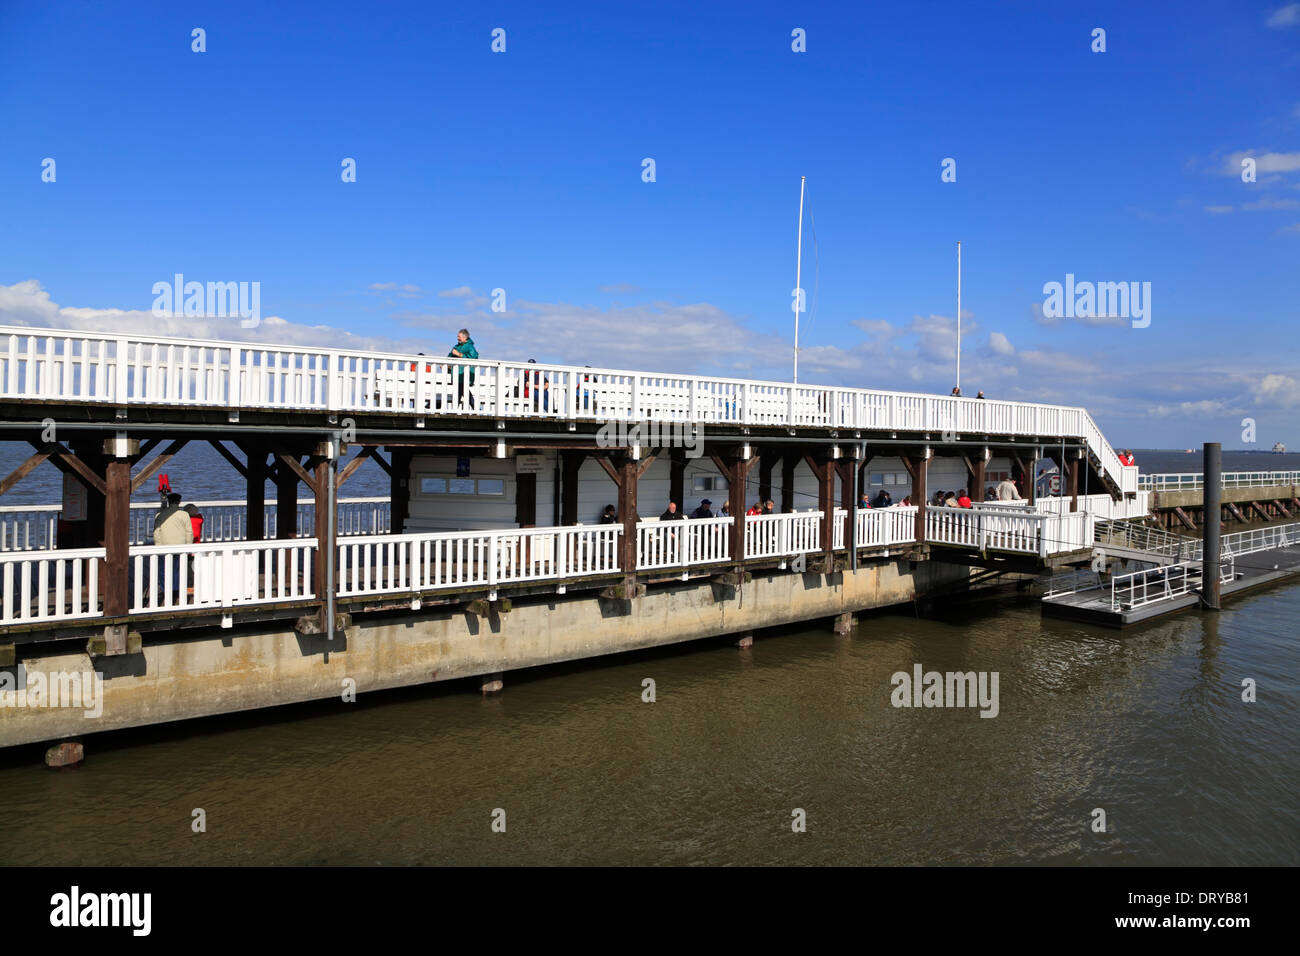 Pier ALTE LIEBE,  Cuxhaven, North Sea, Lower Saxony, Germany, Europe - Stock Image